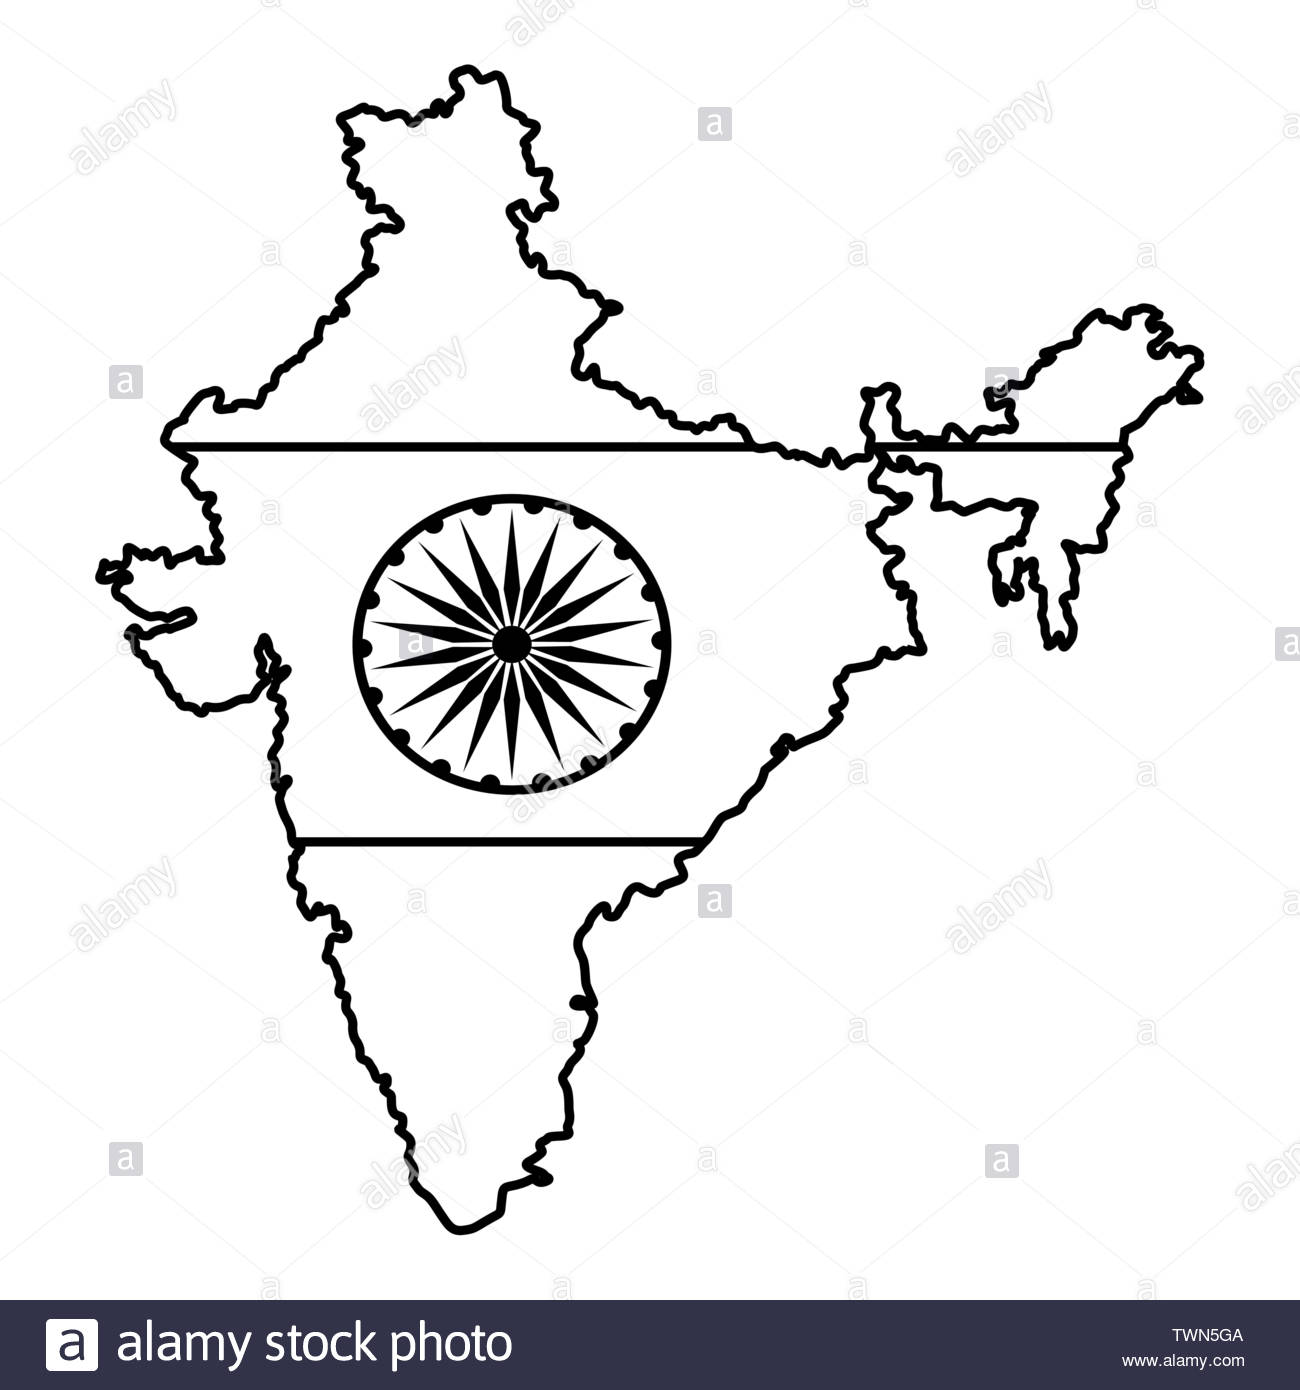 India Flag Black and White Stock Photos & Images.